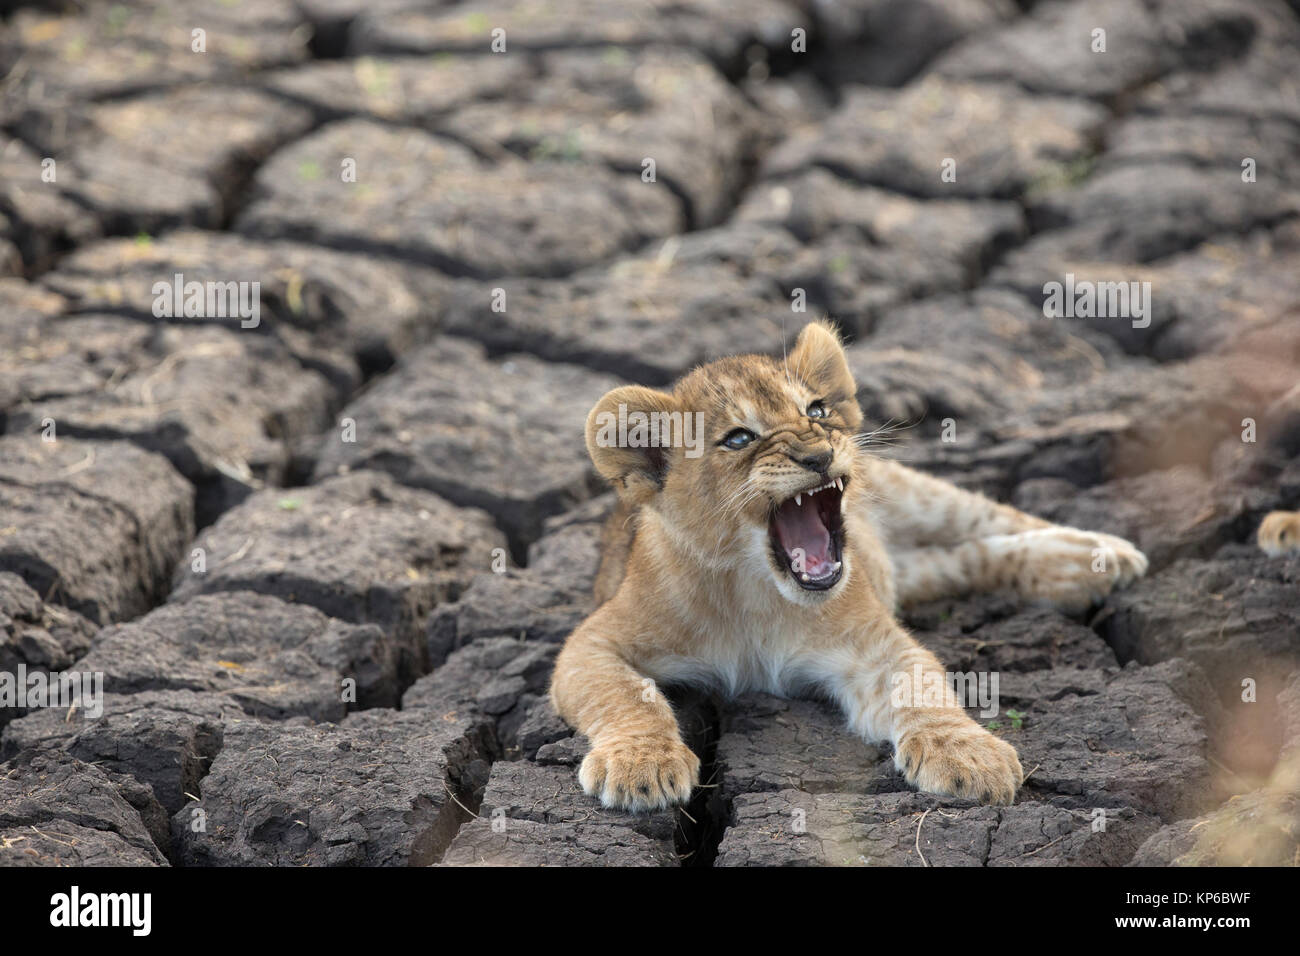 Serengeti National Park. Lion cub (Panthera leo). Tanzania. - Stock Image